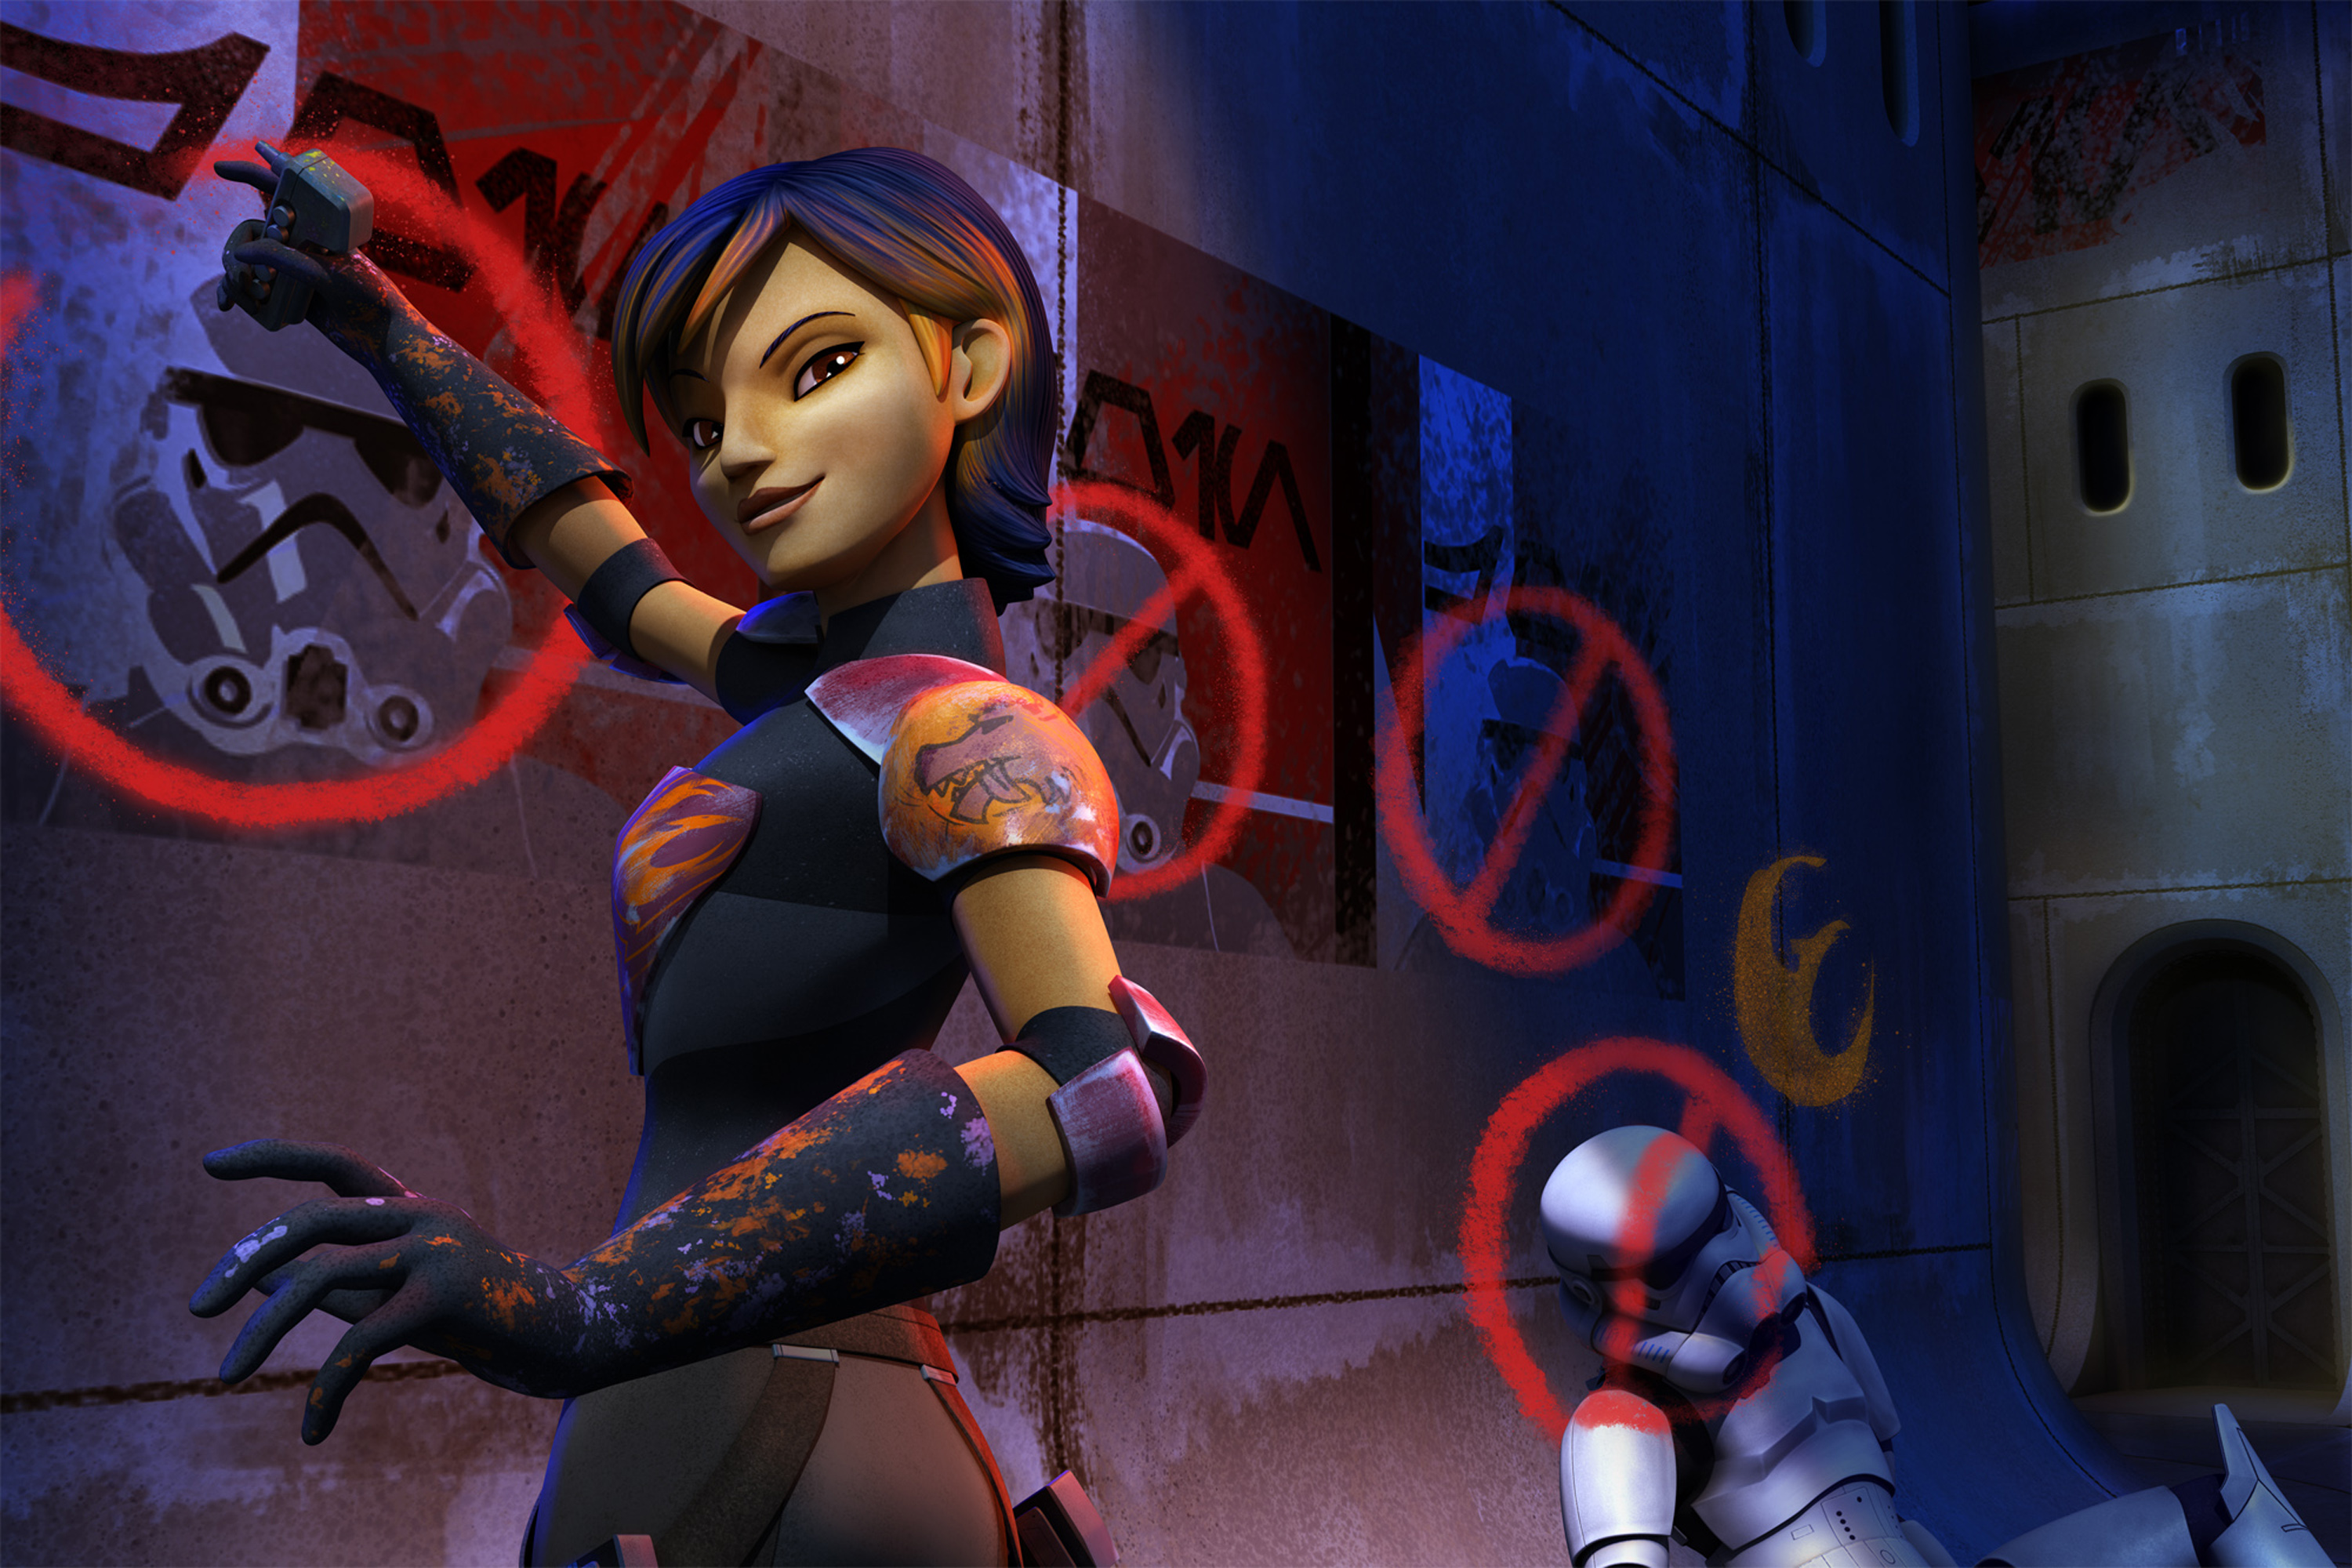 Star-Wars-Rebels-Sabine-PROMO-PHOTOS-05MARCO2014